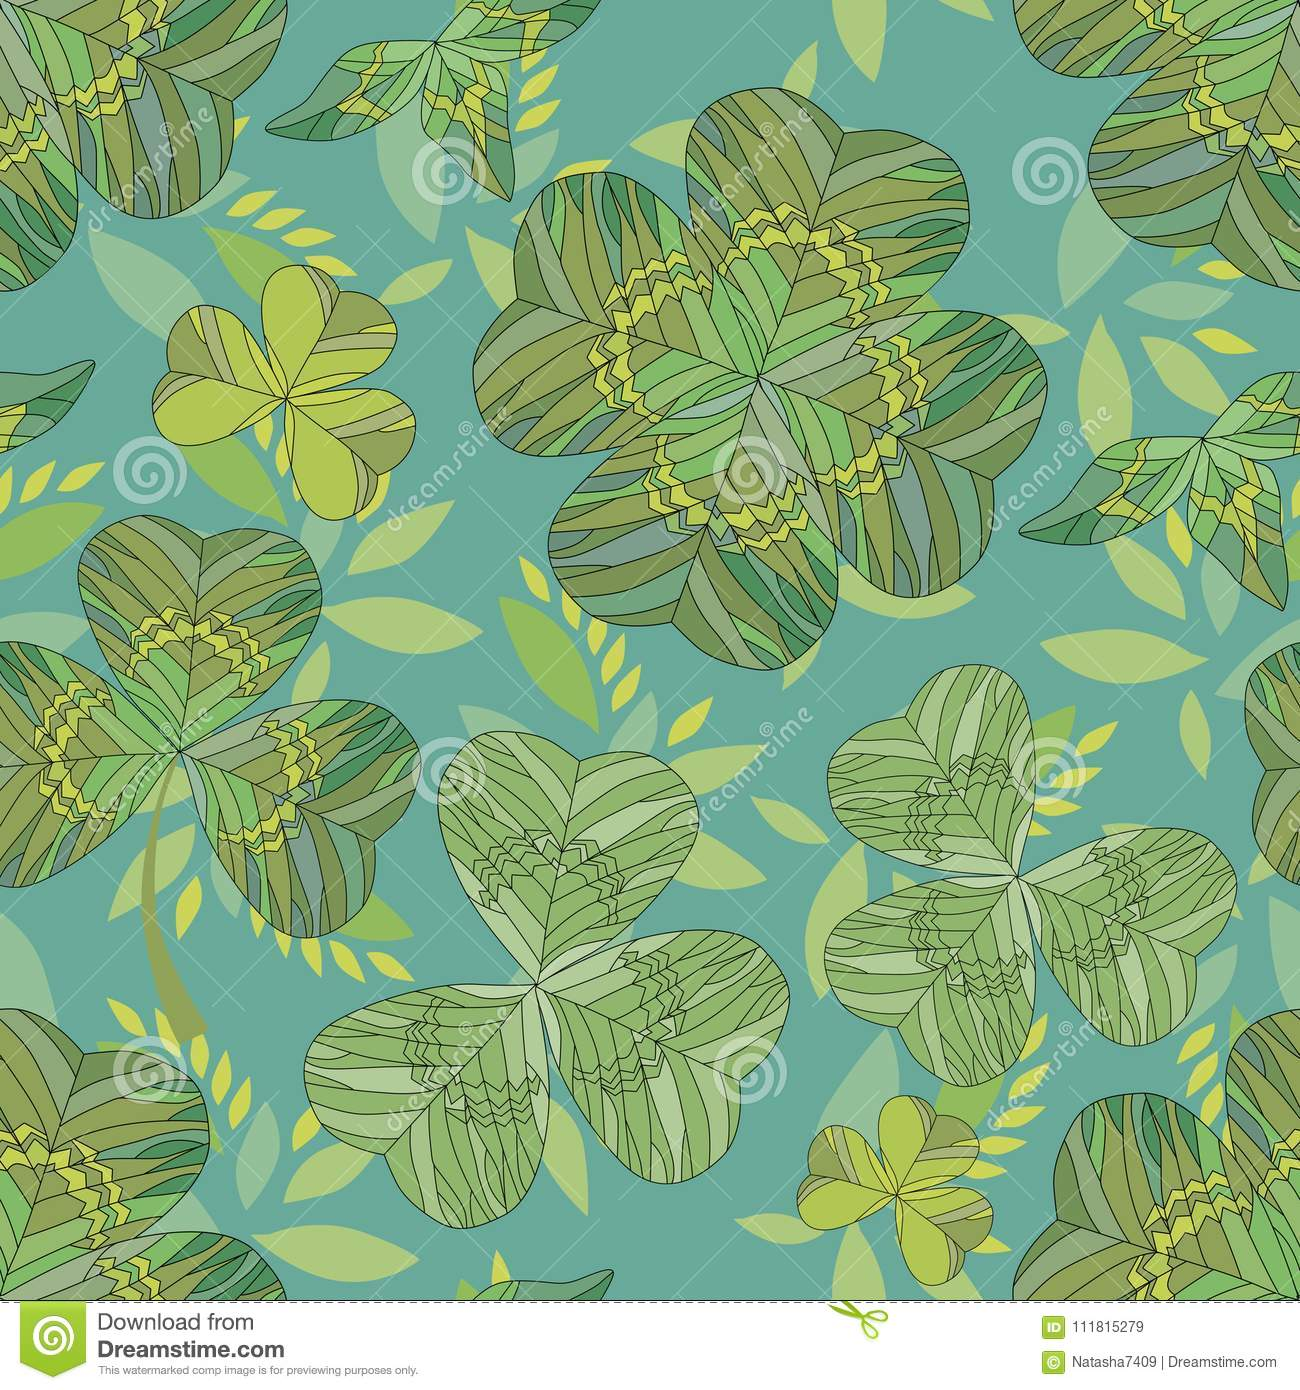 Clover background. Seamless pattern.